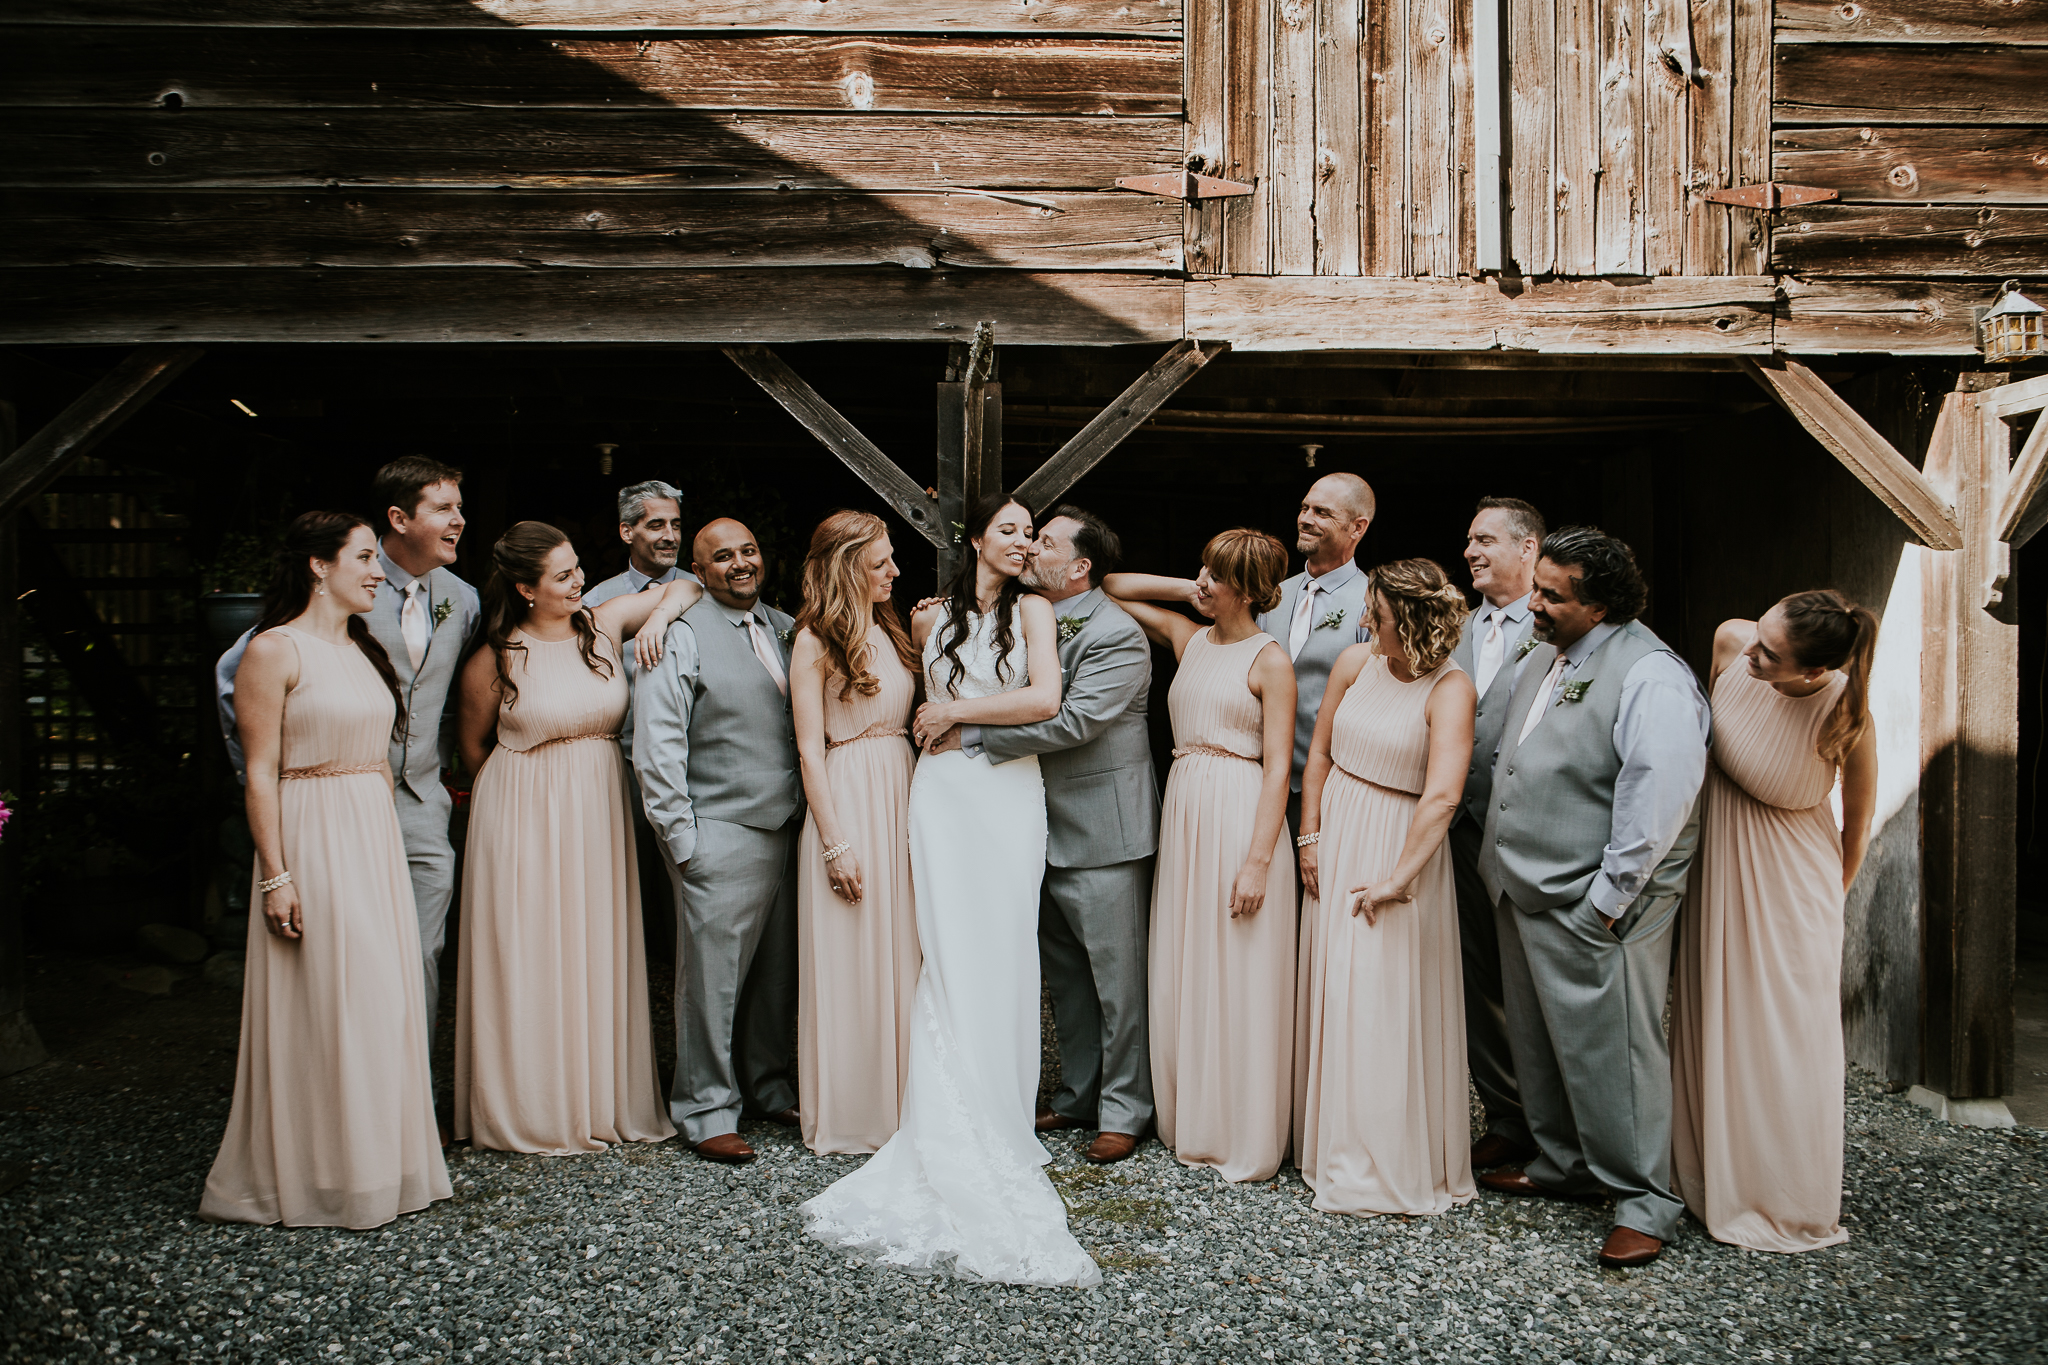 Bridal party photos in barn during vineyard wedding near Victoria BC